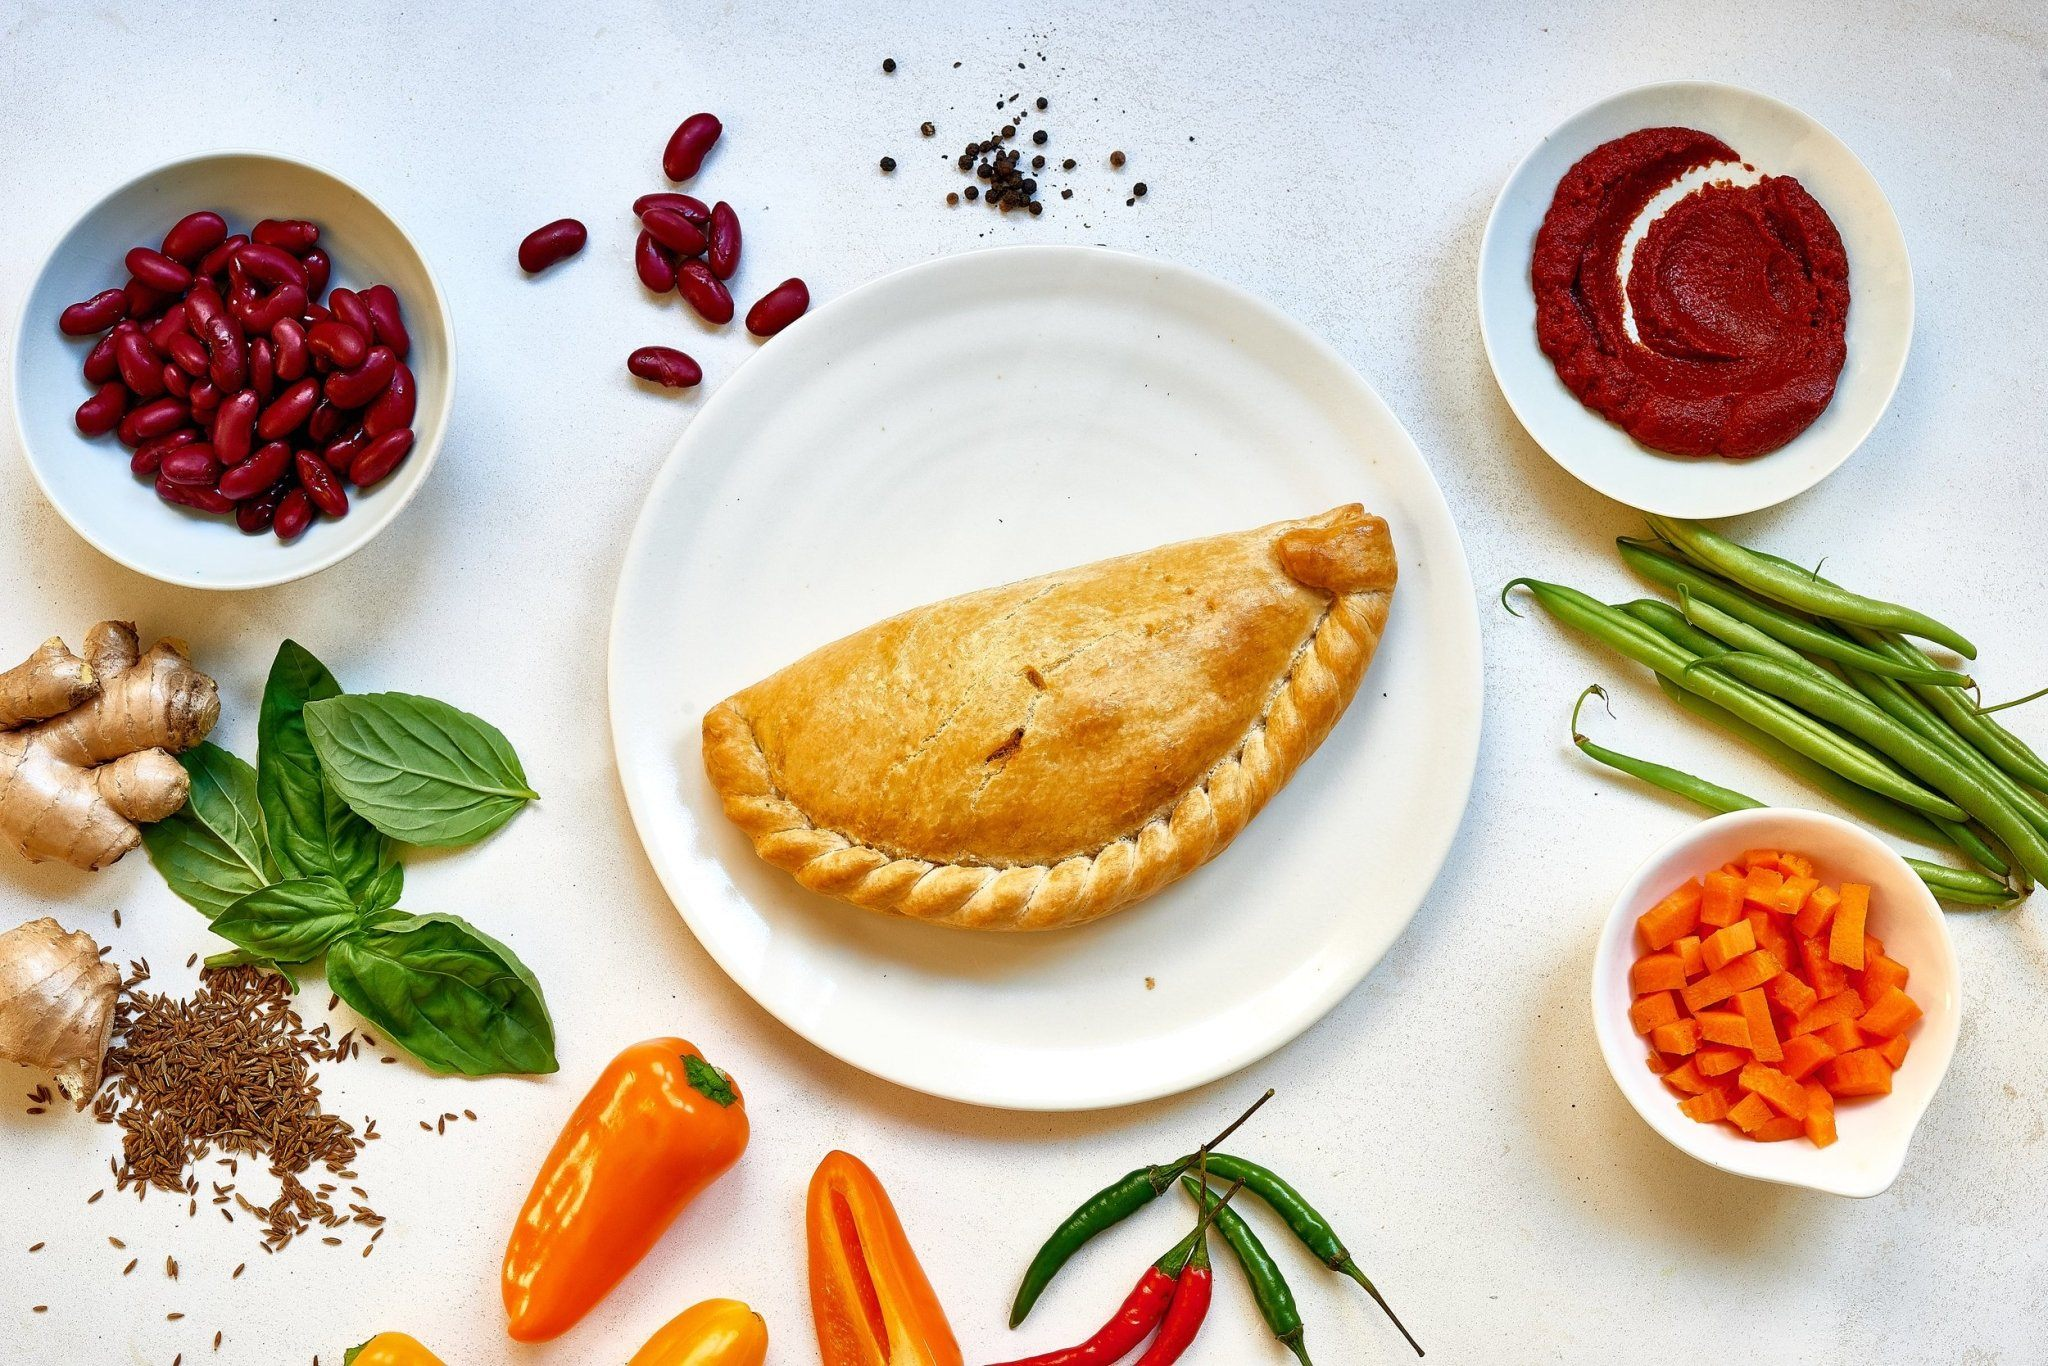 8 x Spicy Mediterranean Vegetable Pasties (Vegan) 283g Frozen - Cornwall Hamper Store